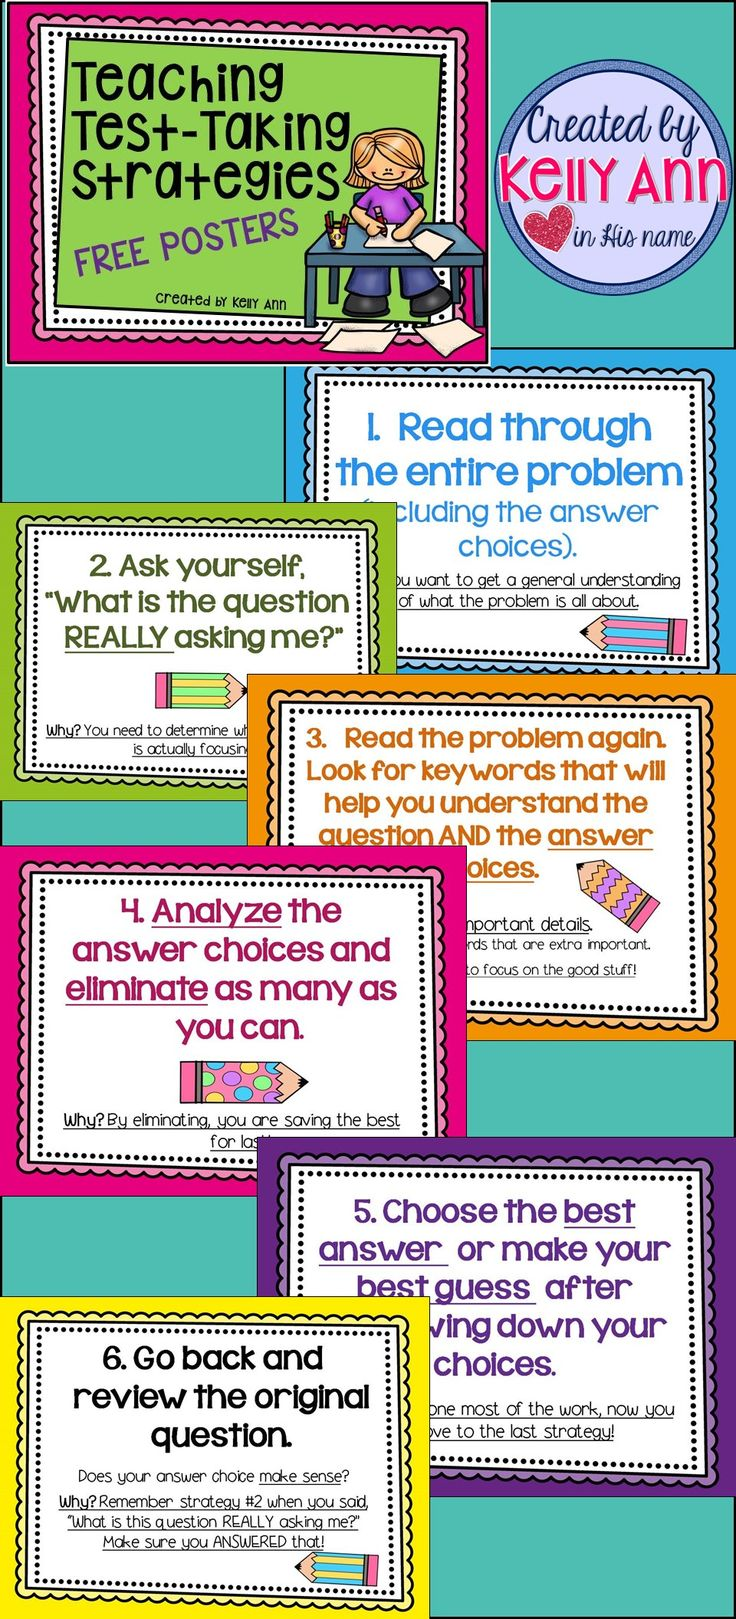 These posters would be great to hand around the classroom to give test taking strategy reminders to students. They can look to these when taking tests and can find comfort in knowing that their teacher is there to help them.